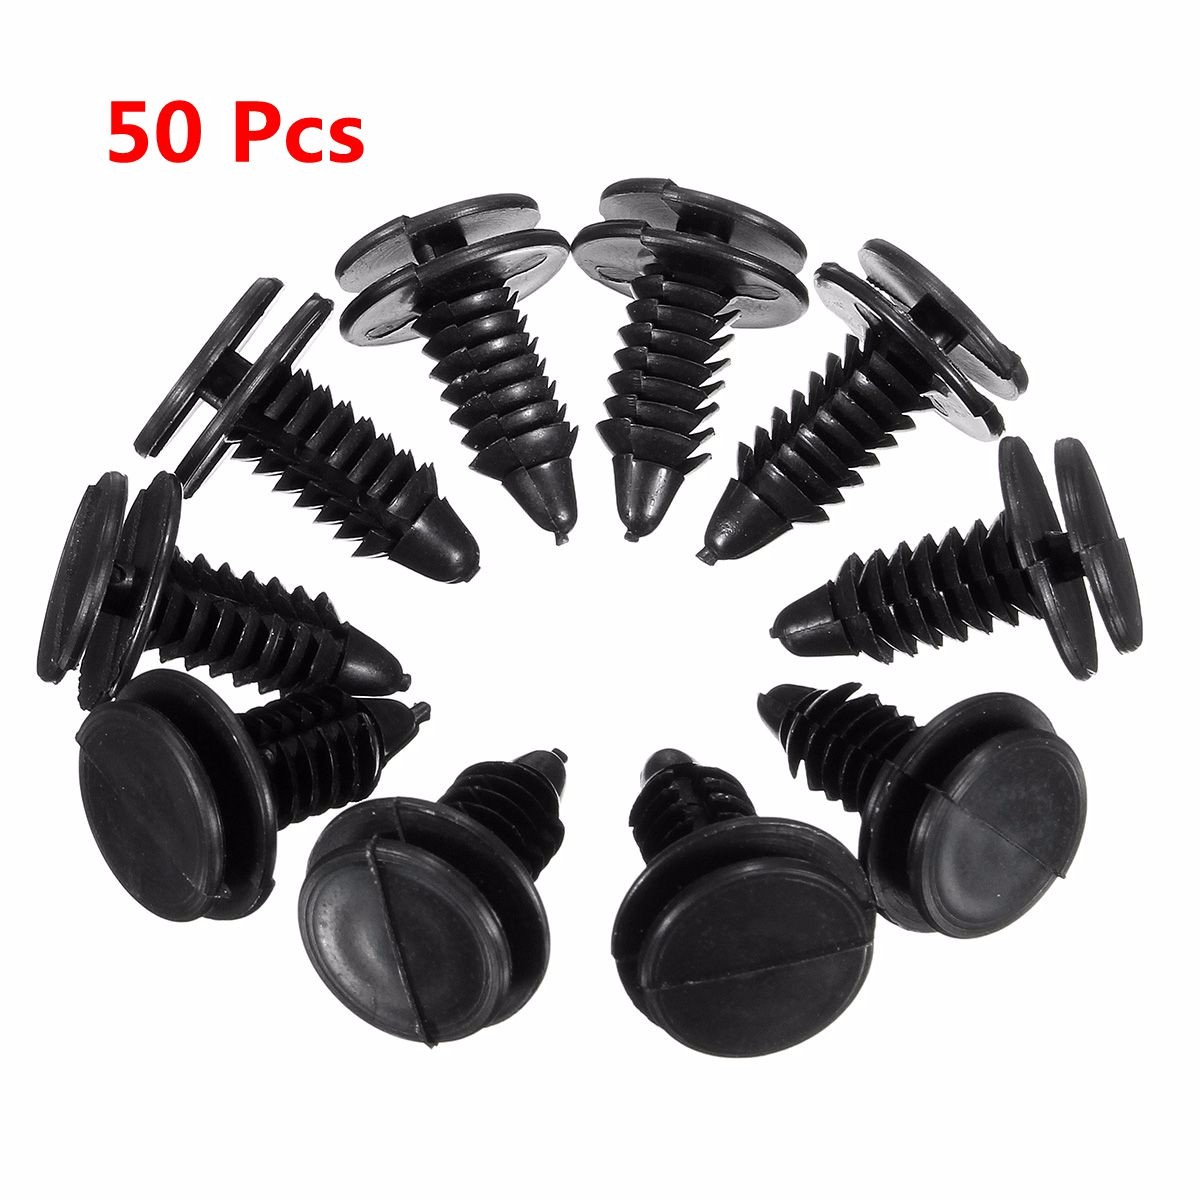 Š�50pcs Car Interior ��� Door Door Trim Panel Retainers Clip